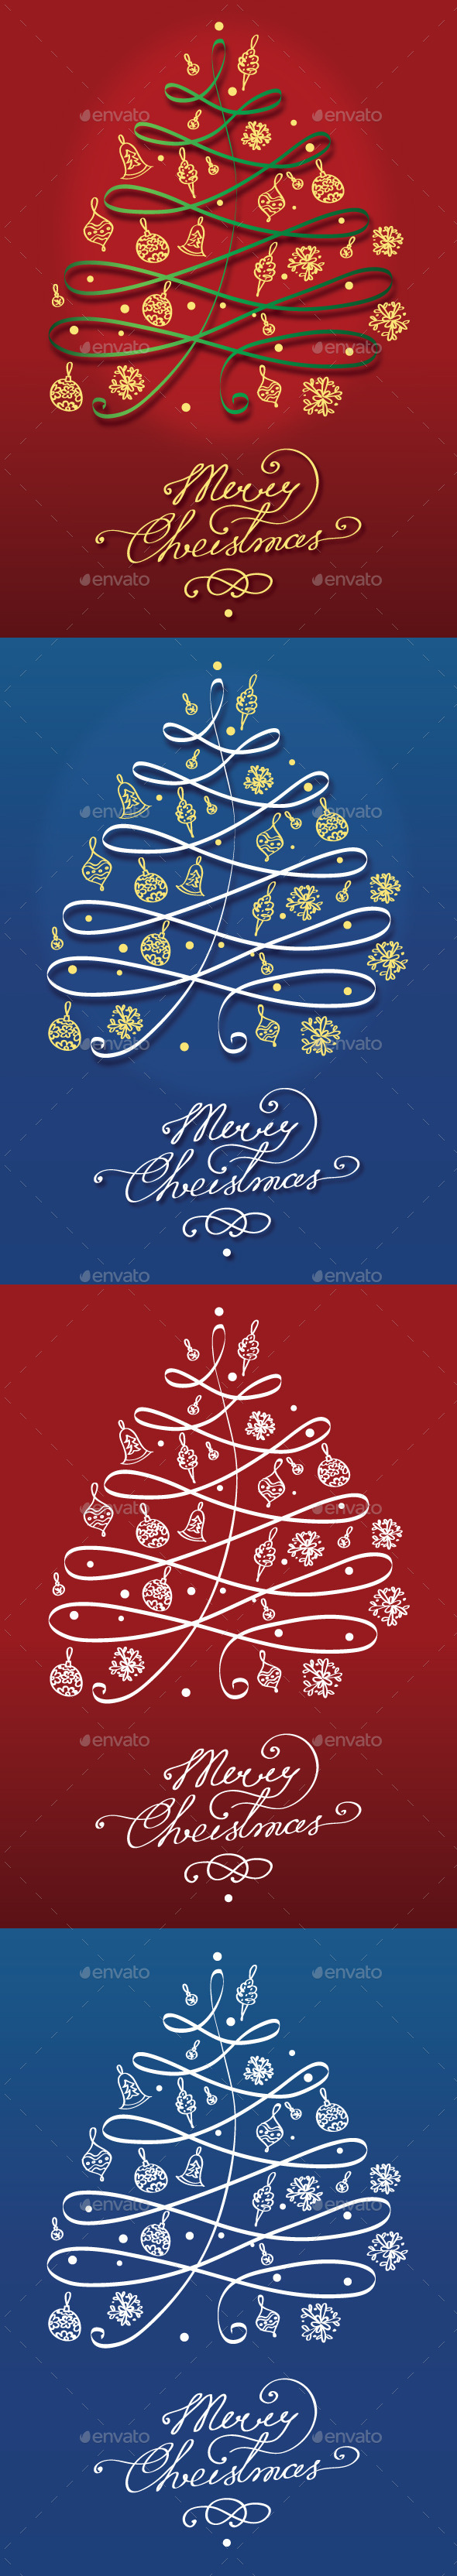 GraphicRiver Christmas Tree Background 9808713